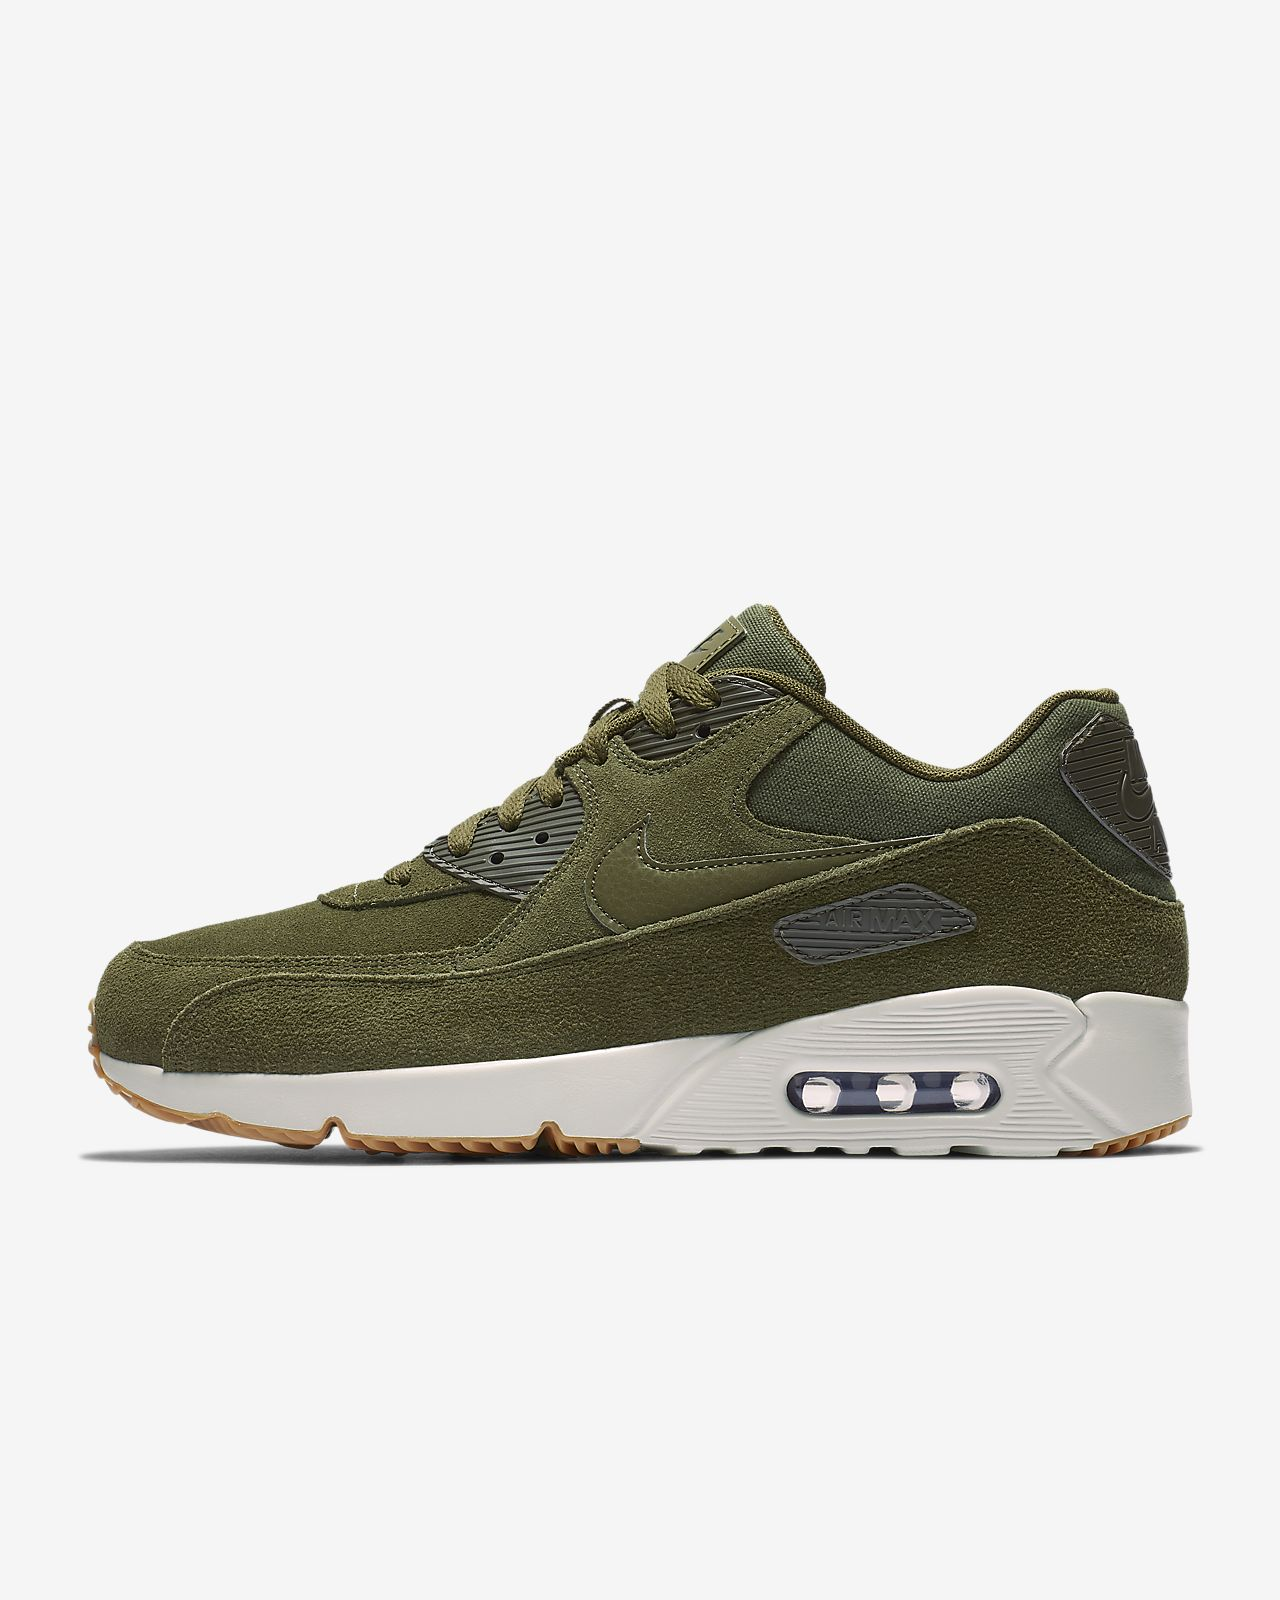 61dca60aaff37 Nike Air Max 90 Ultra 2.0 Men s Shoe. Nike.com